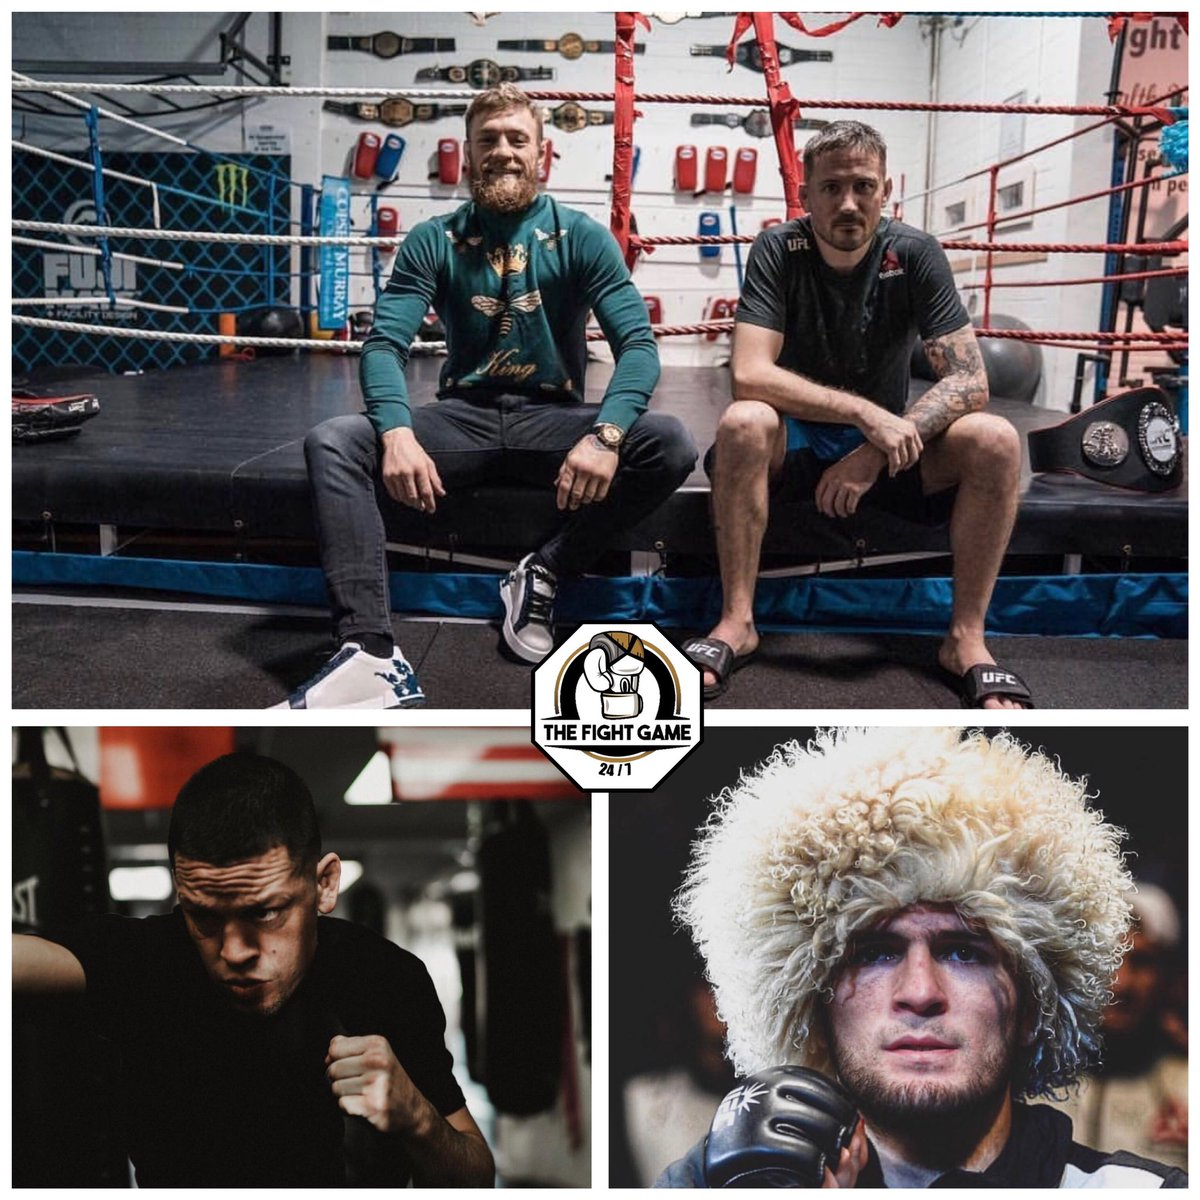 John Kavanagh (@John_Kavanagh) still wants Diaz trilogy for Conor McGregor but 'very confident' in Khabib rematch.  Who does Conor fight next?  Do you want the Diaz trilogy or the Khabib rematch? Comment below ⬇️.  #UFC #MMA #ConorMcgregor #NateDiaz #Khabib